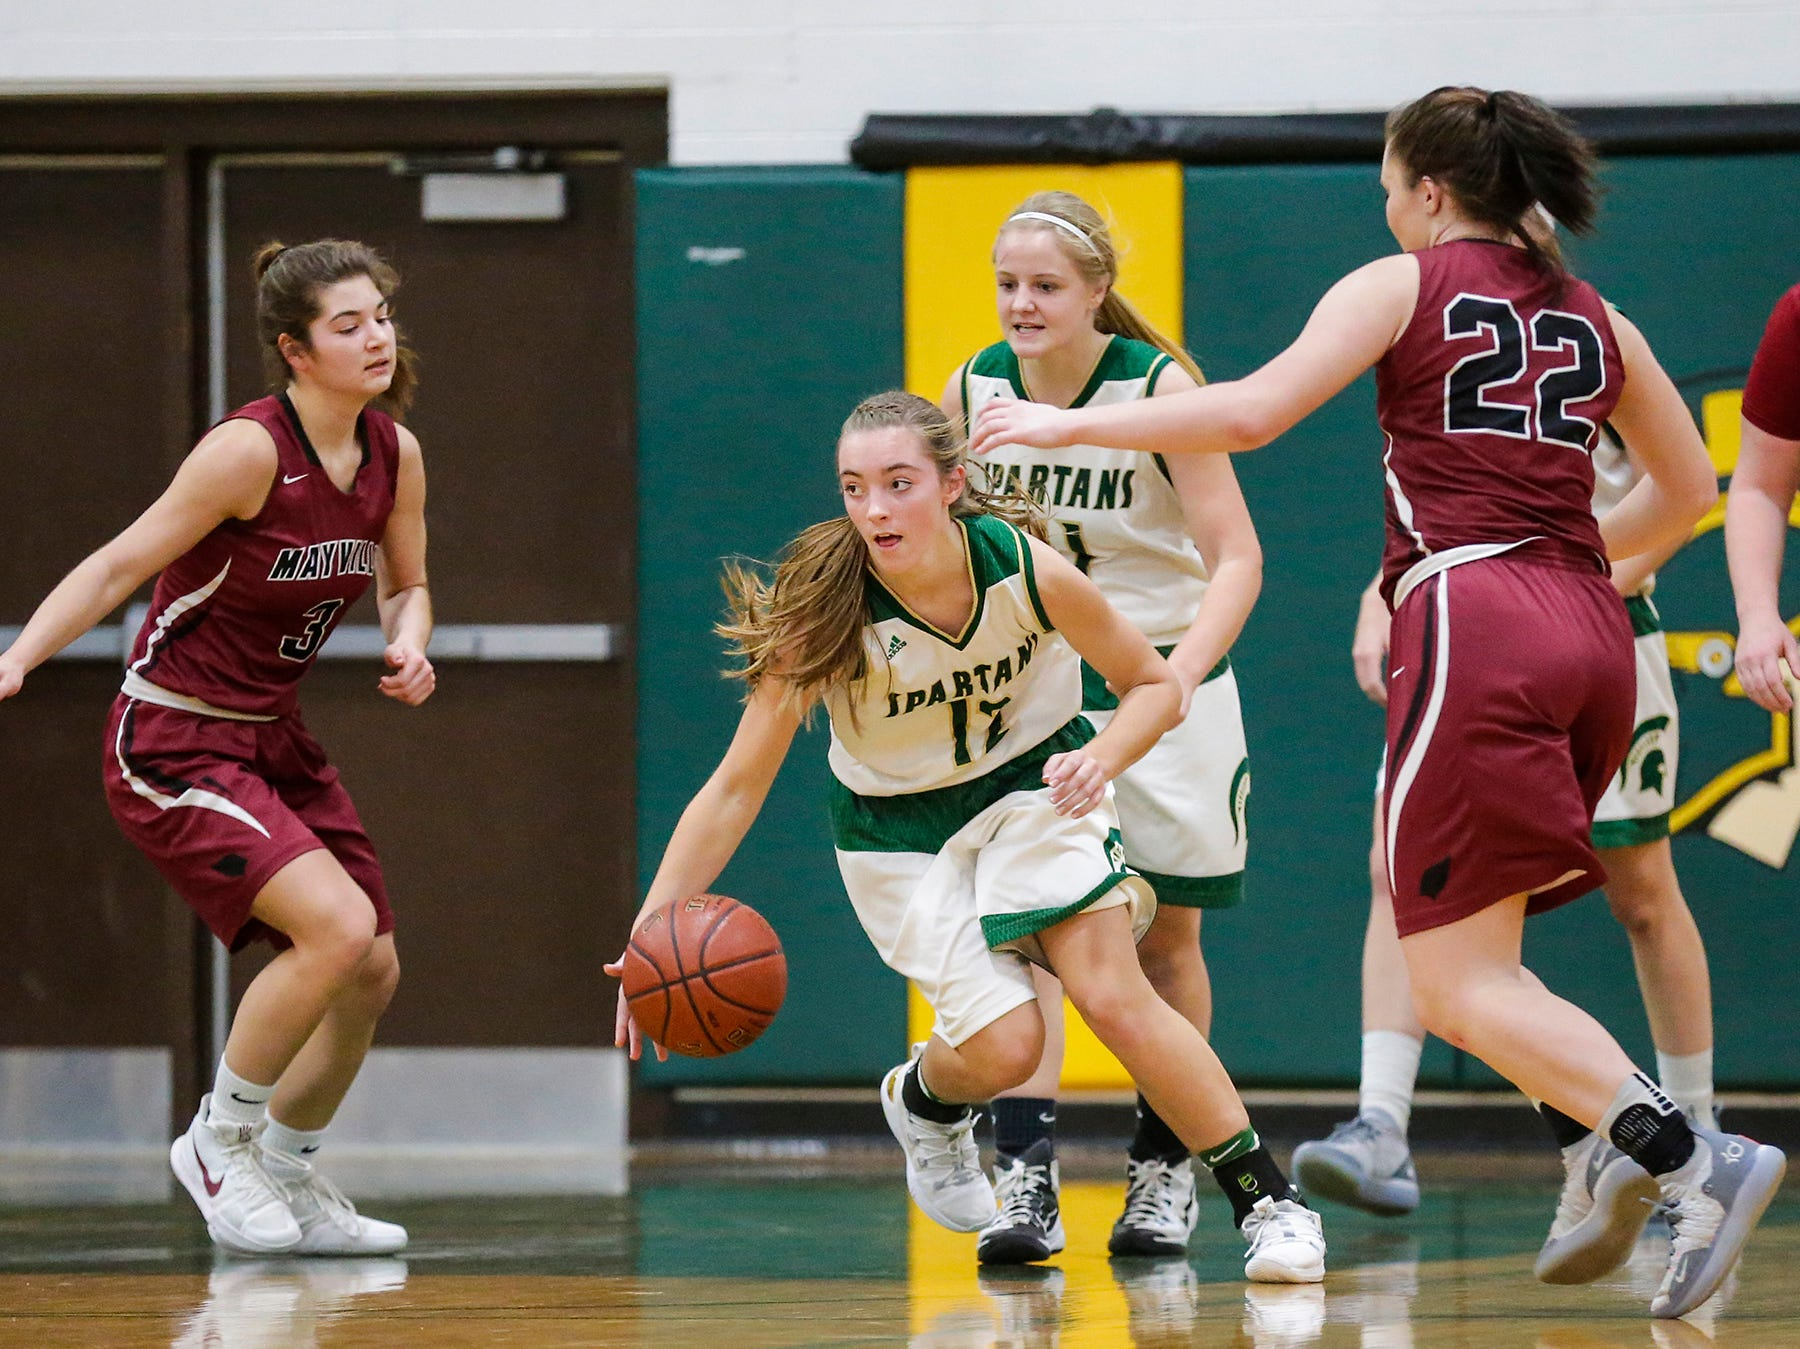 Laconia High School girls basketball's Lexy Smit breaks away with the ball against Mayville High School during their game Friday, November 30, 2018 in Rosendale. Doug Raflik/USA TODAY NETWORK-Wisconsin